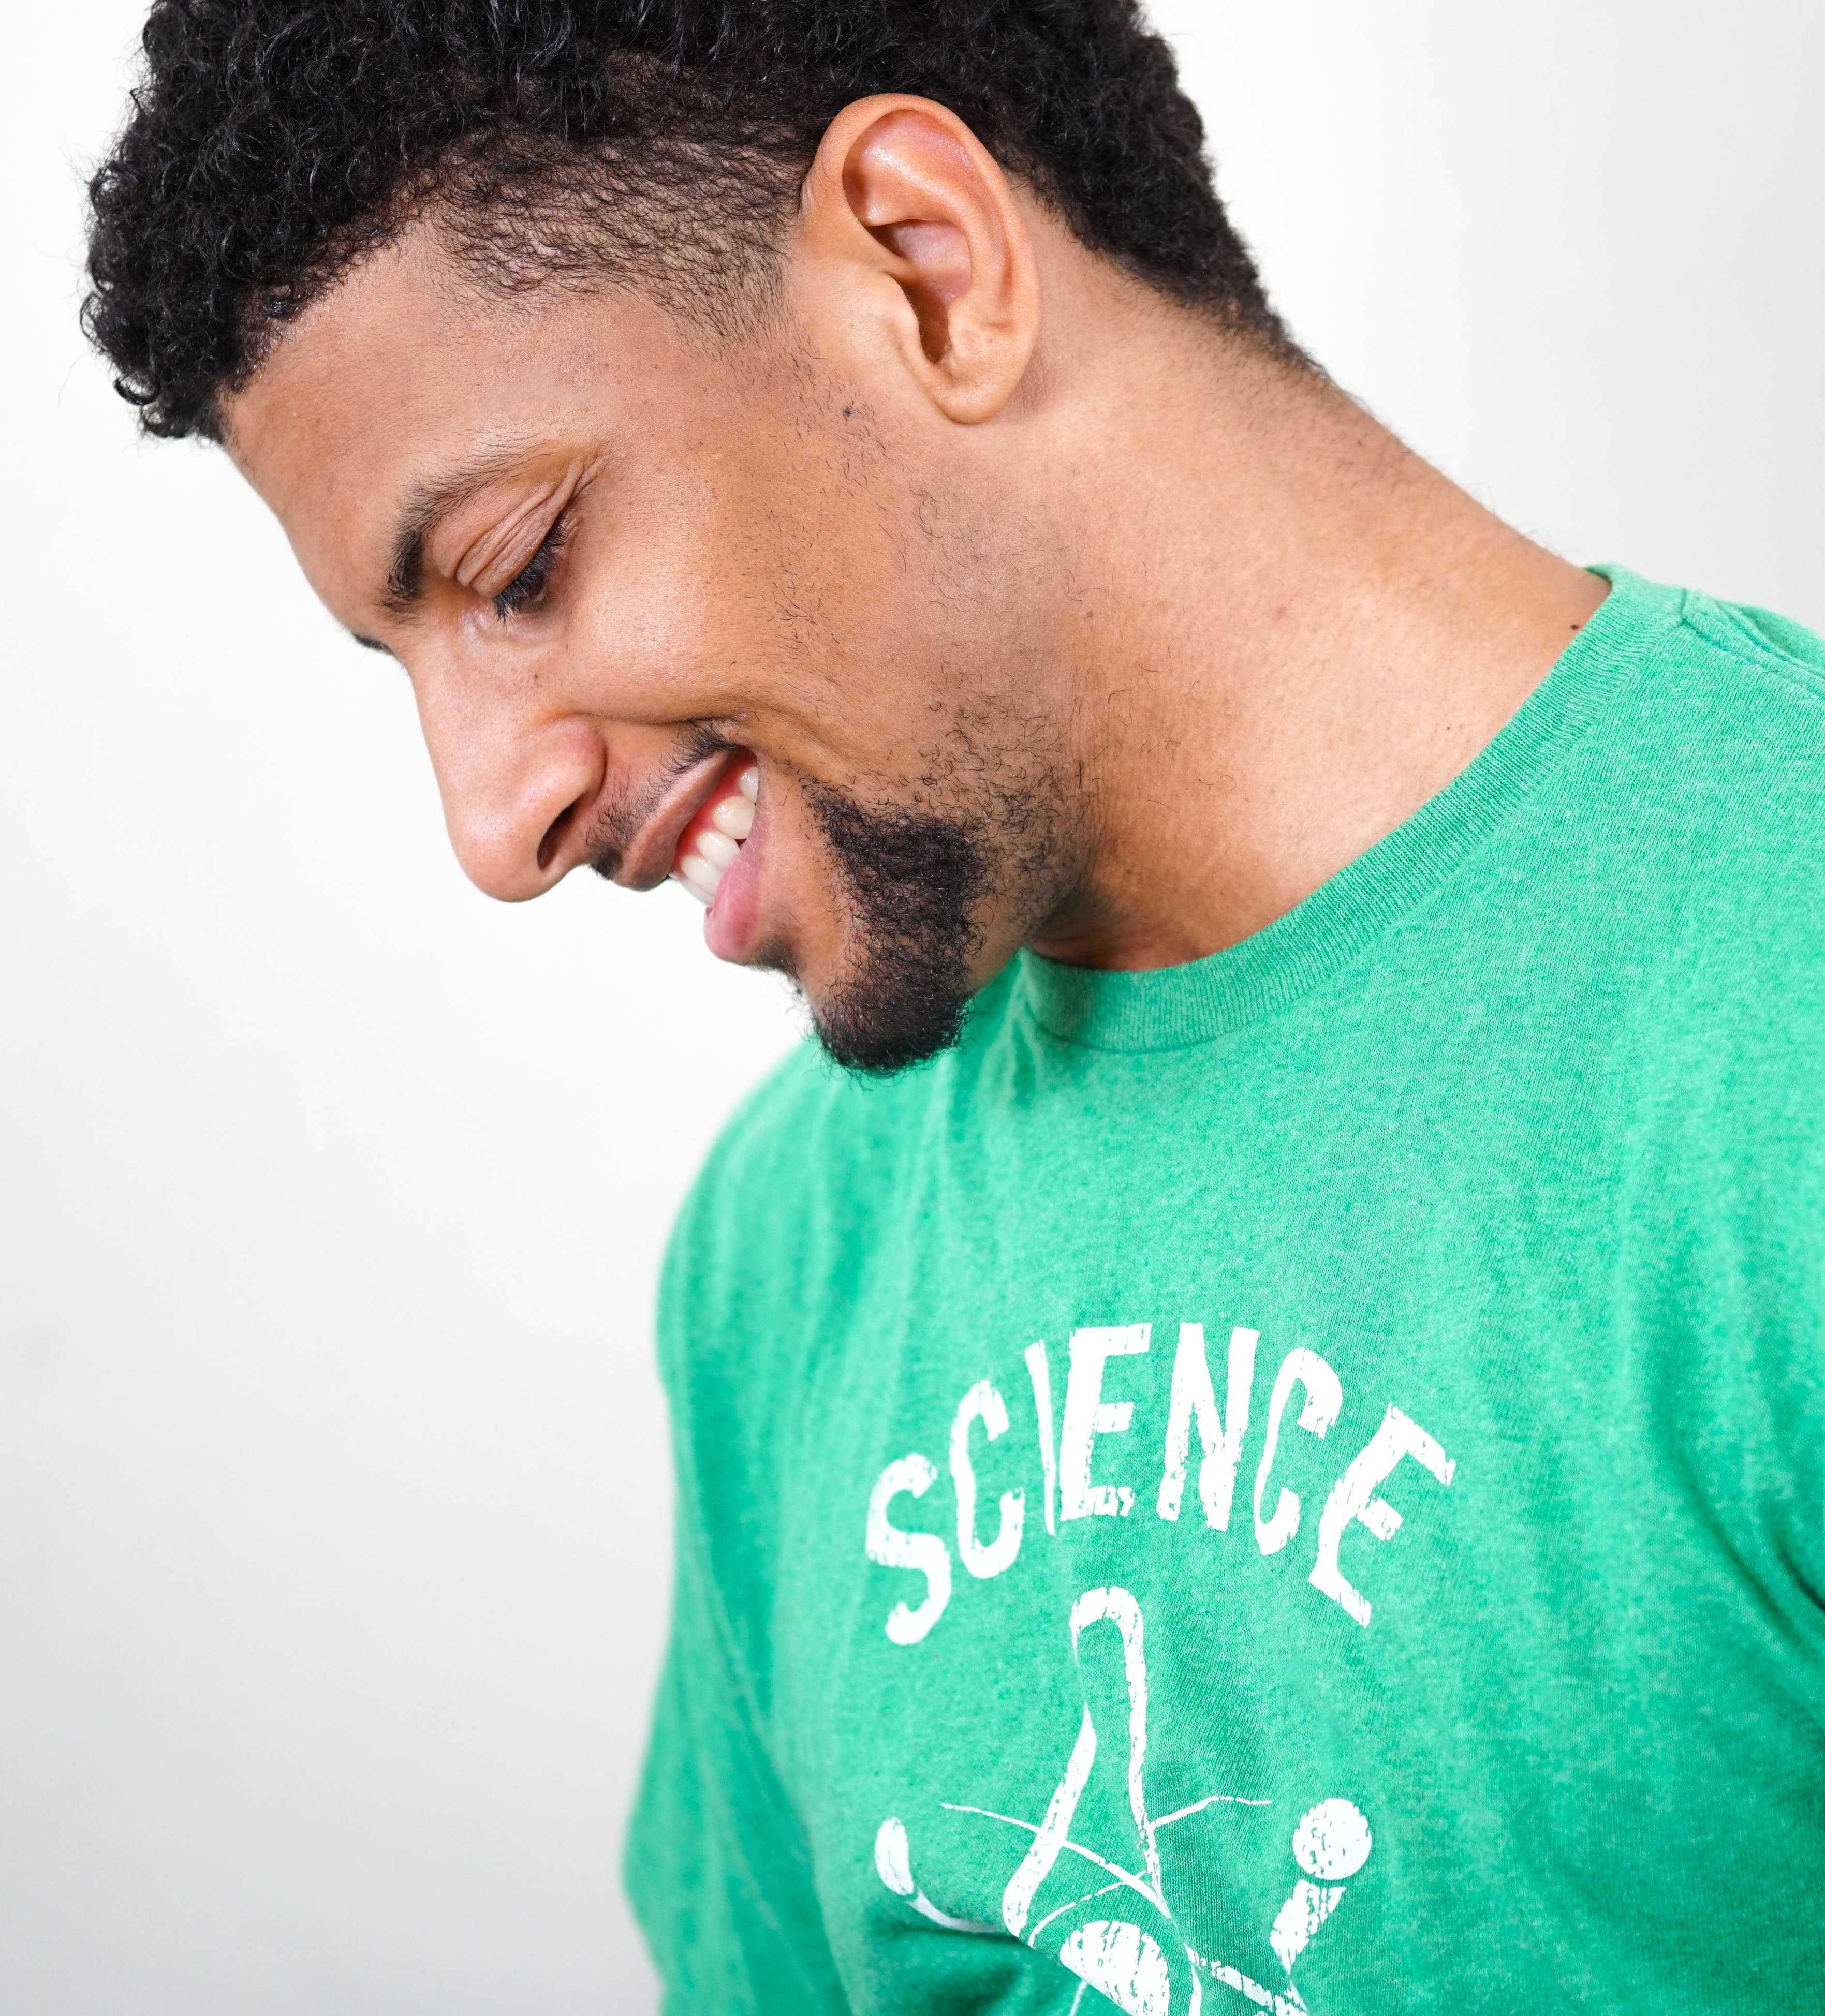 Free stock photo of science, science communicator, science guy, science man